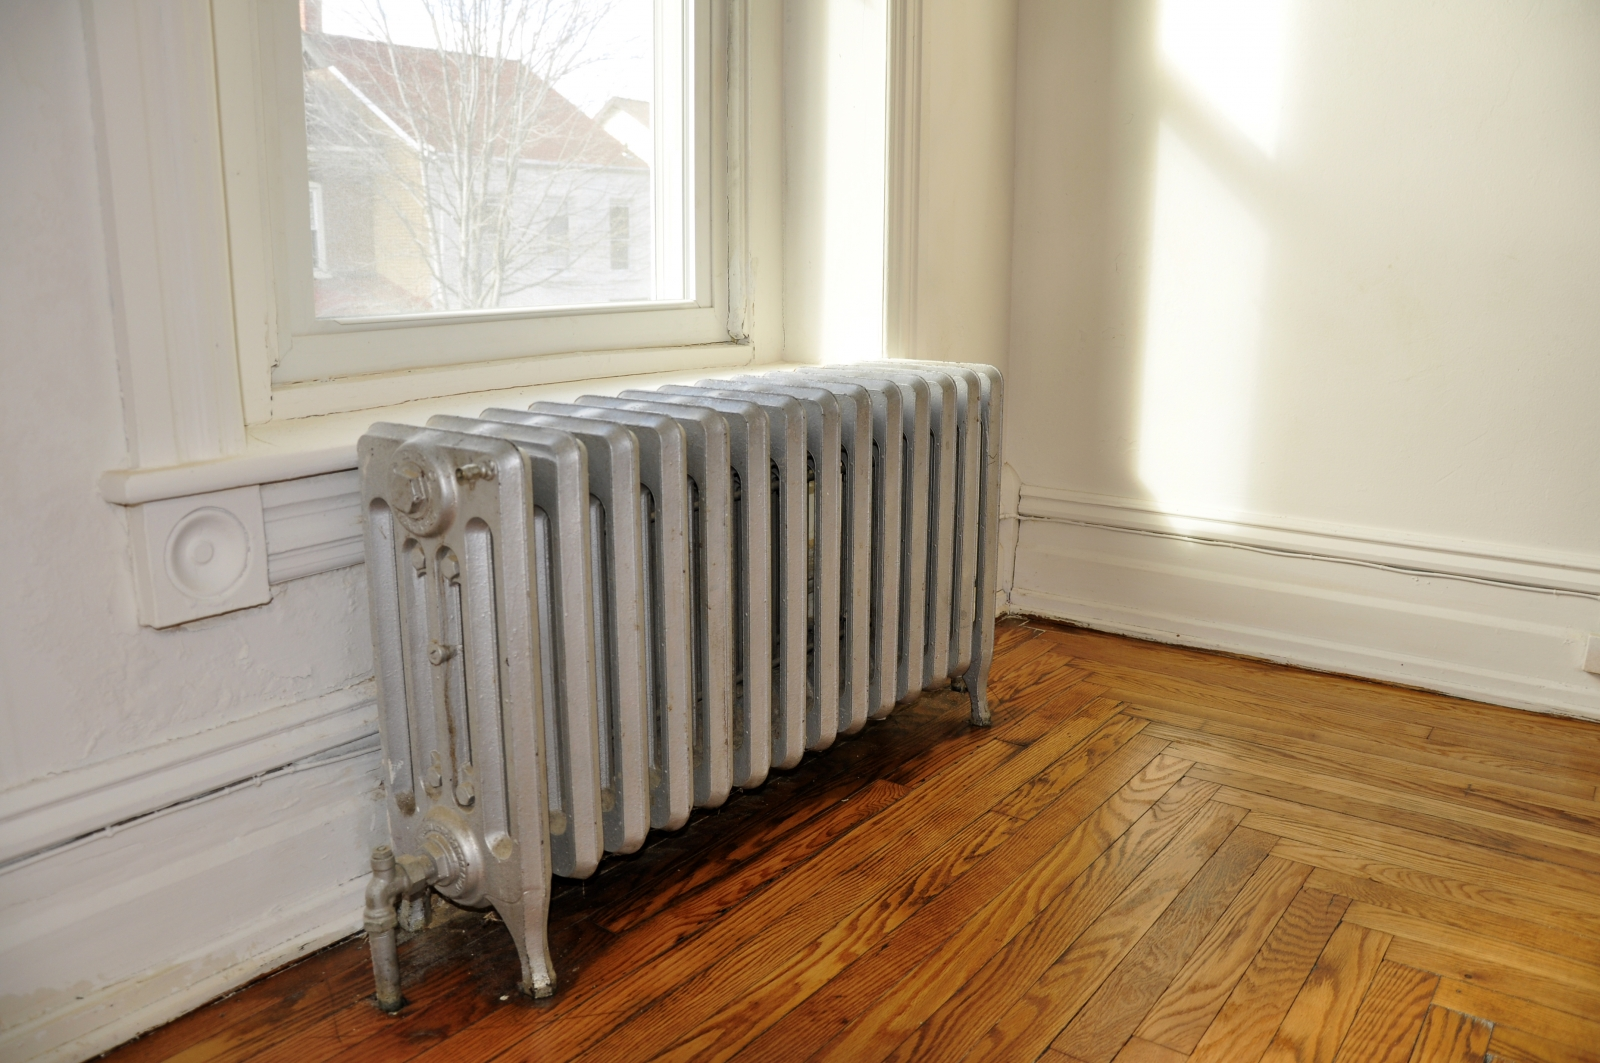 Image Of A Steam Radiator Overheating City Apartment